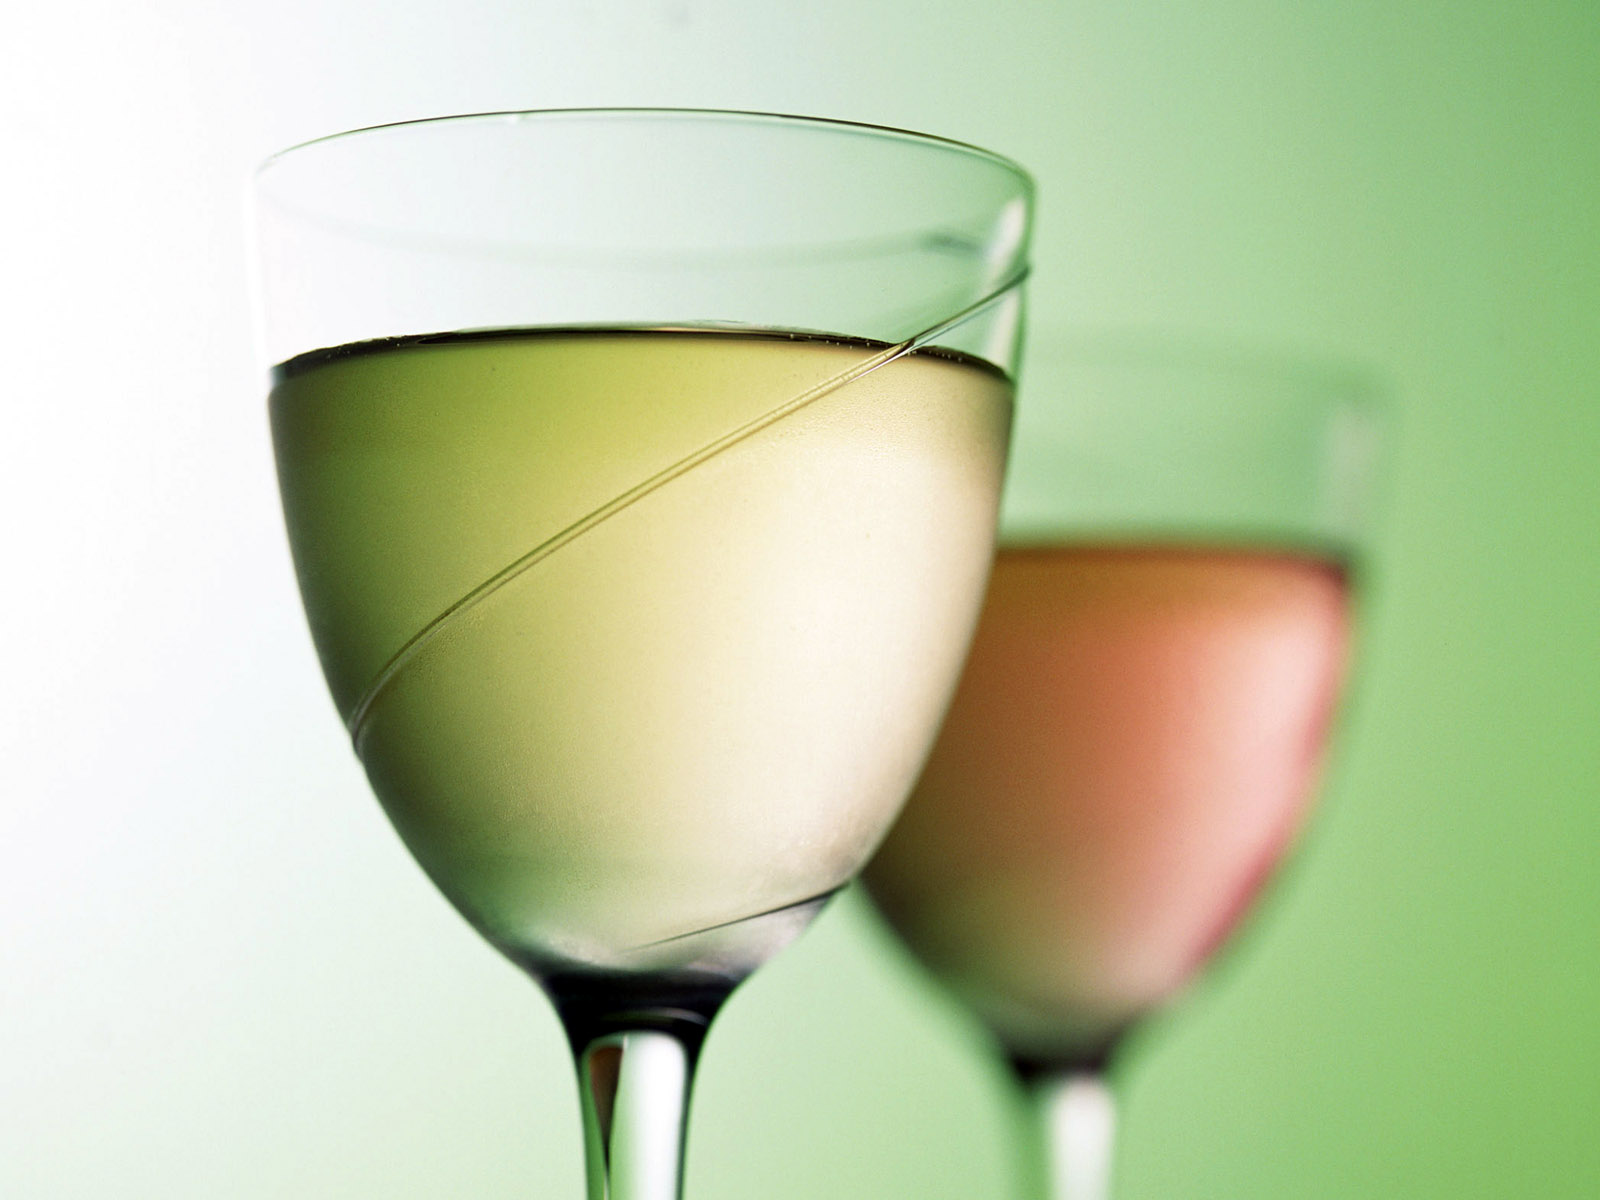 glass of wine wallpapers and images – download wallpapers, pictures Wallpaper